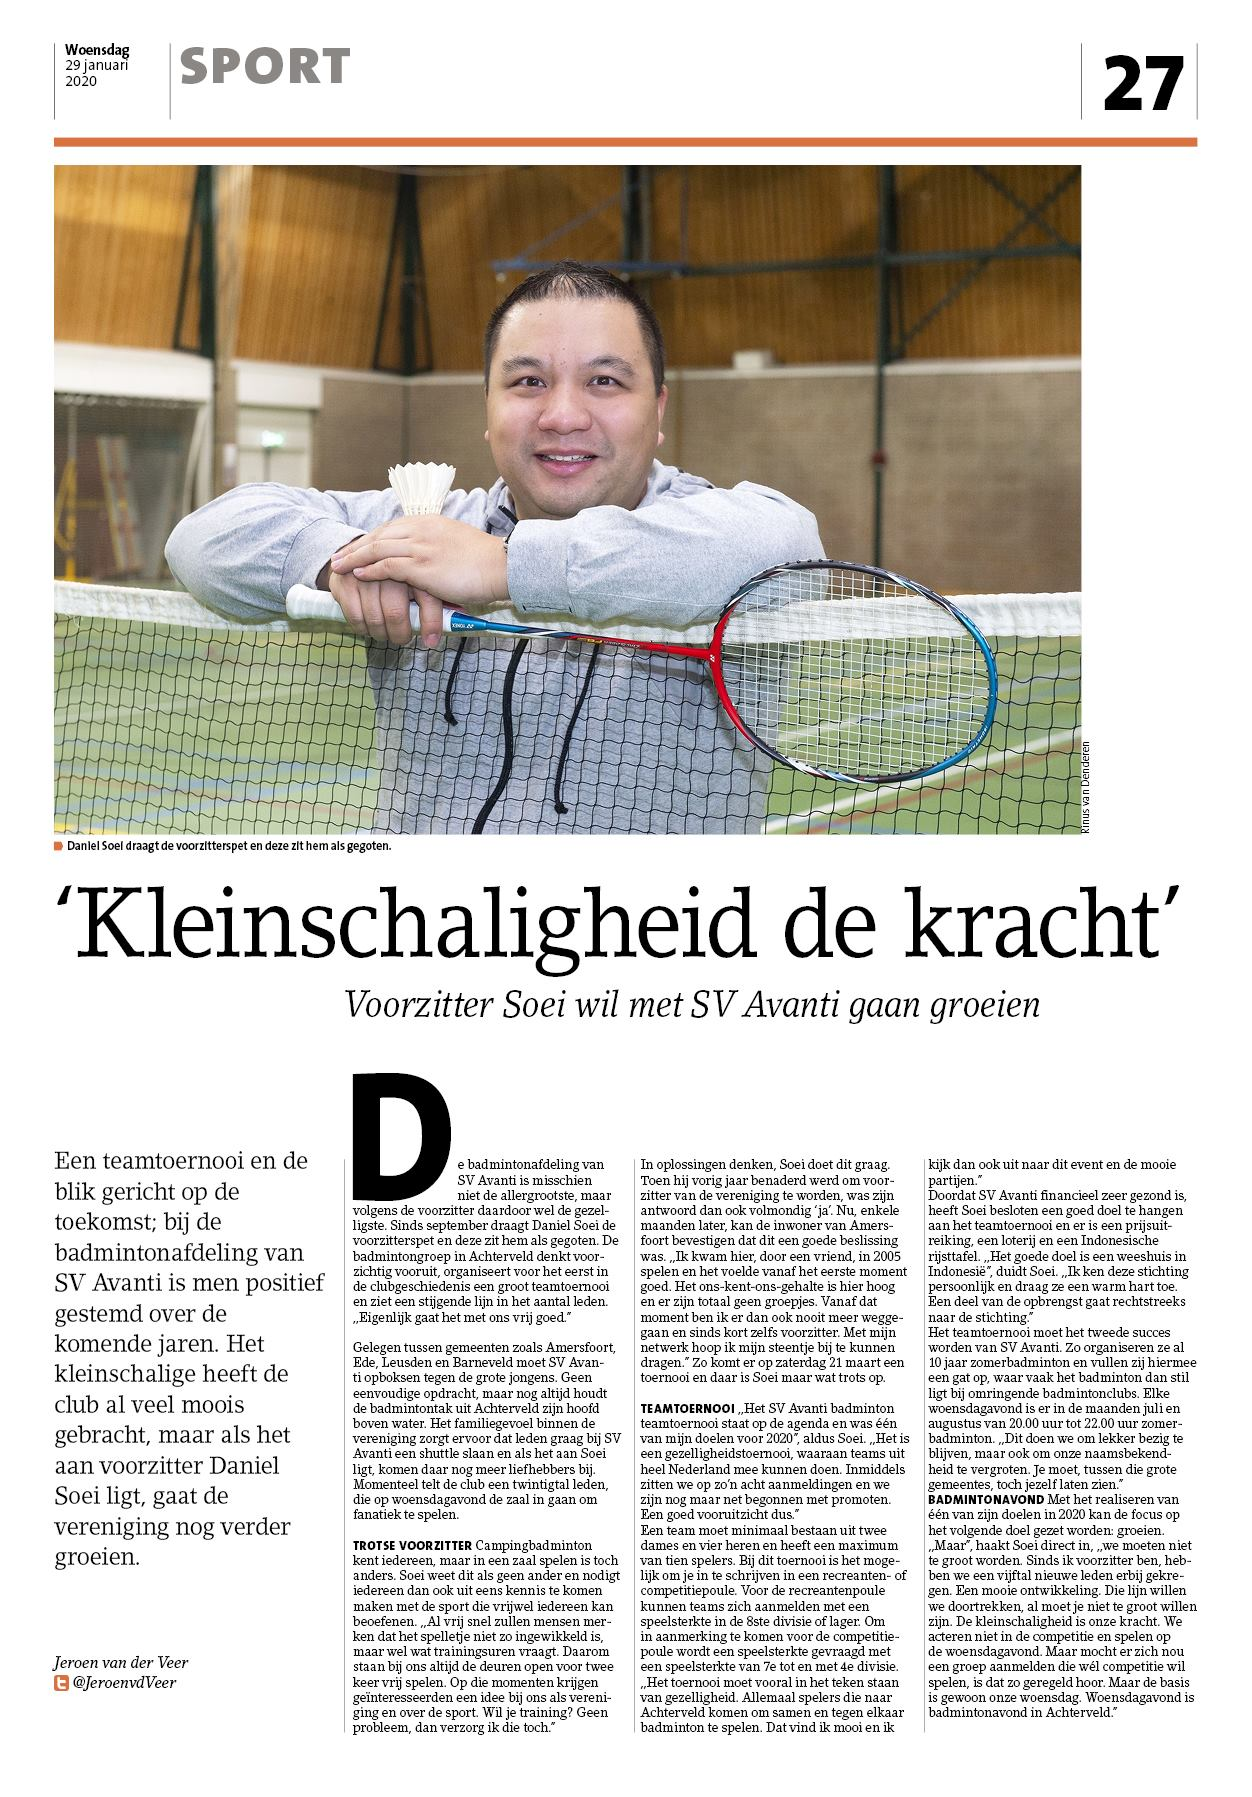 Interview Leusderkrant - Januari 2020